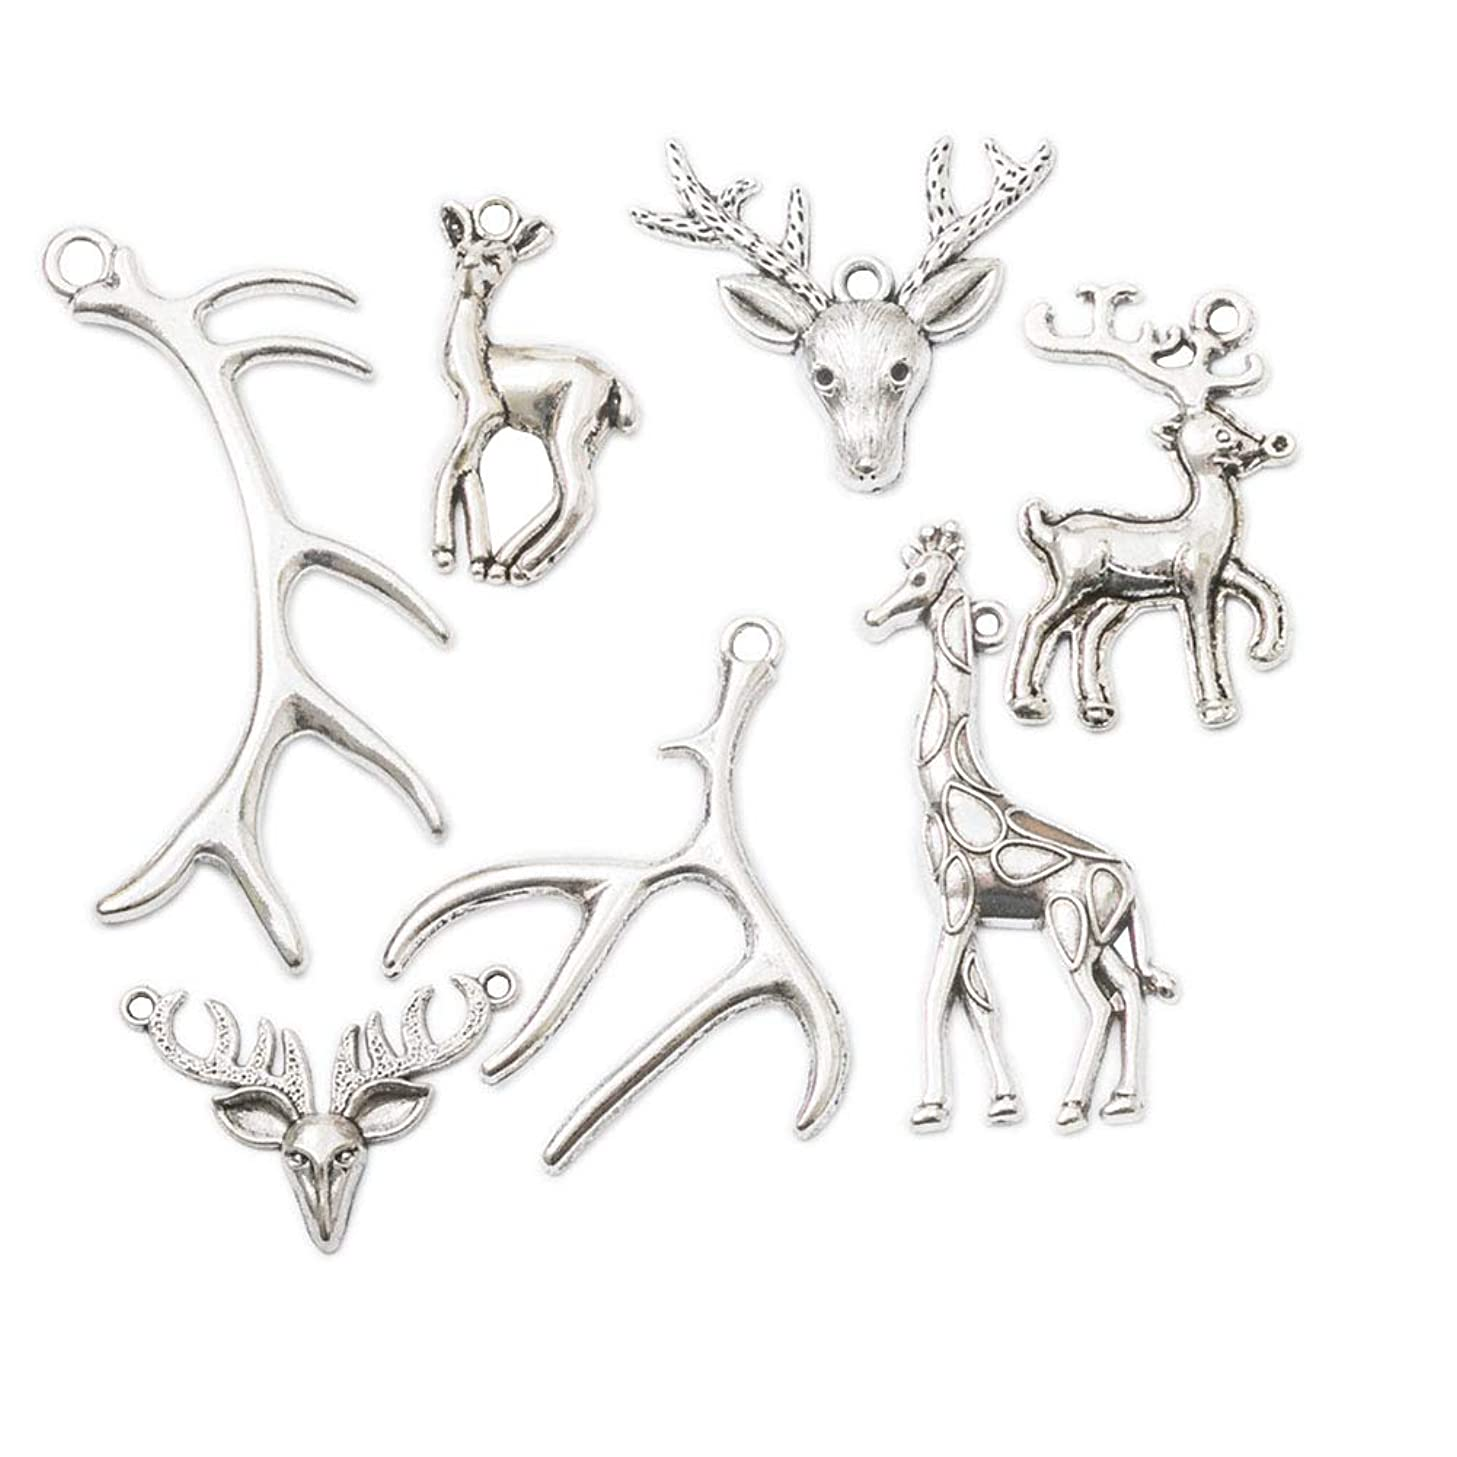 35pcs Mixed Style Vintage Antique Silver Alloy Animal Deer Antler Charms Pendant Jewelry Findings for Jewelry Making Necklace Bracelet DIY (35pcs Deer)